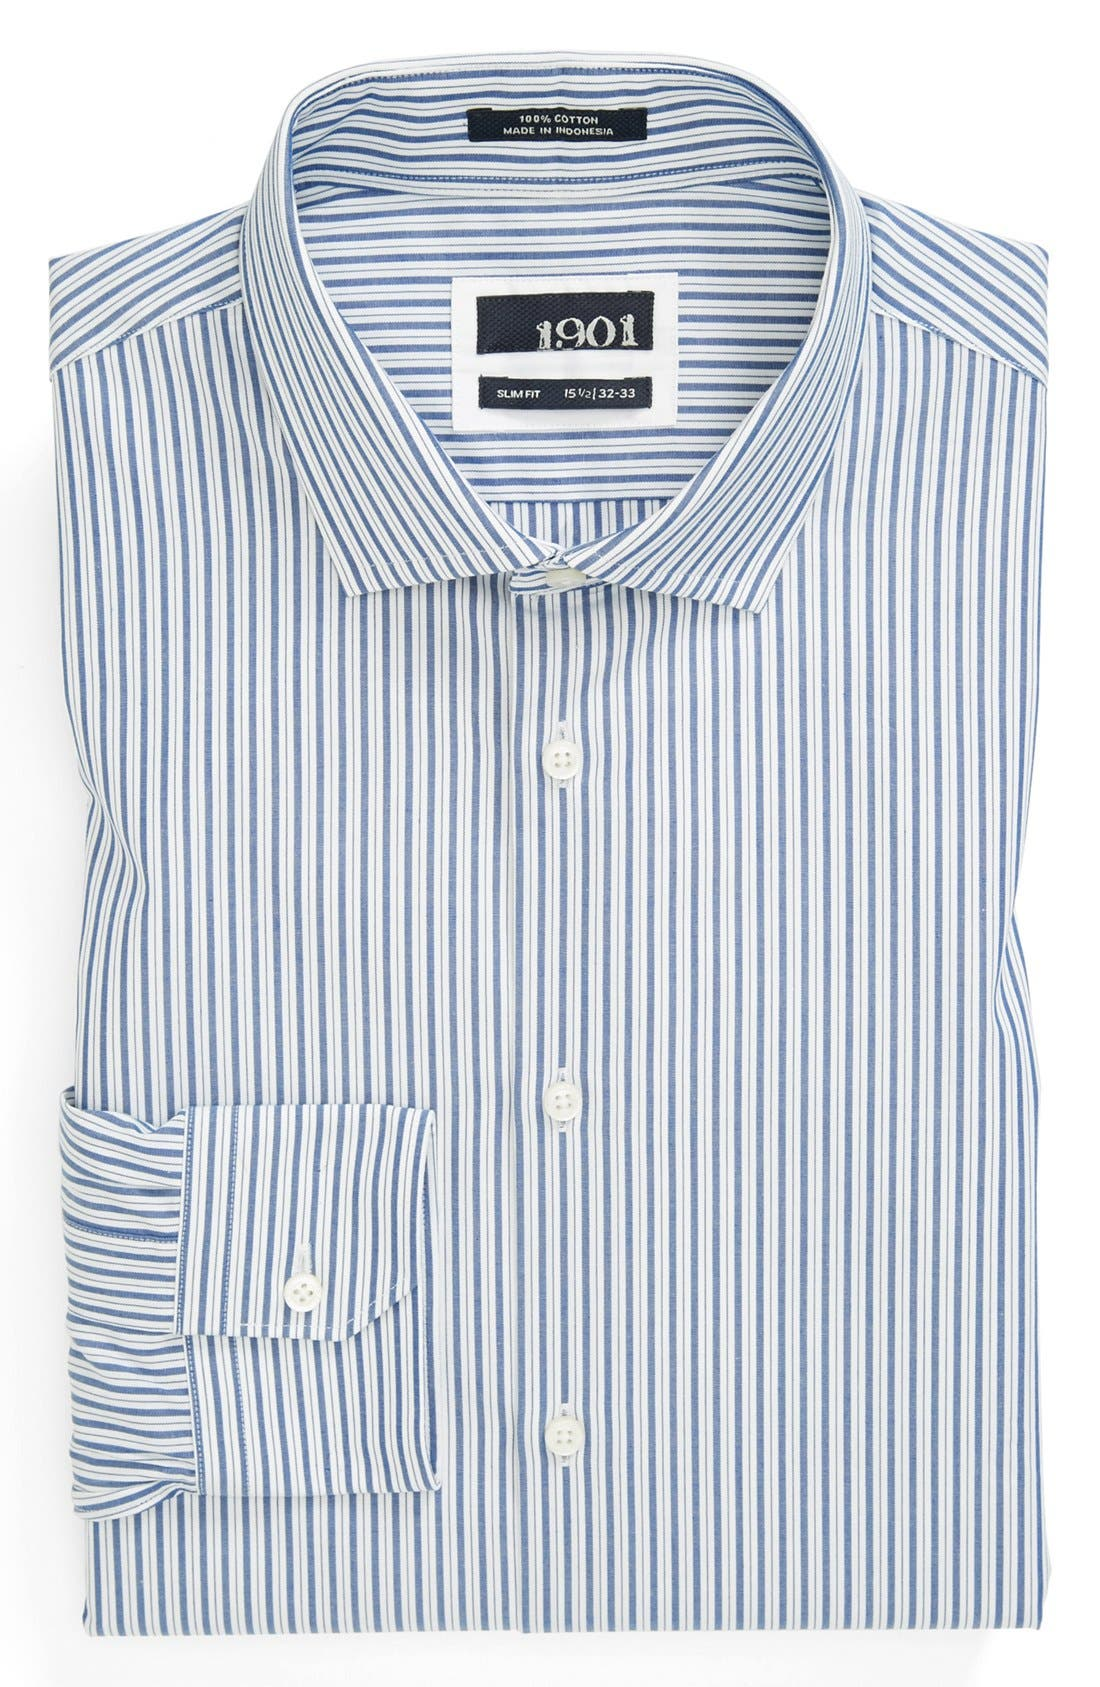 Main Image - 1901 Slim Fit Dress Shirt